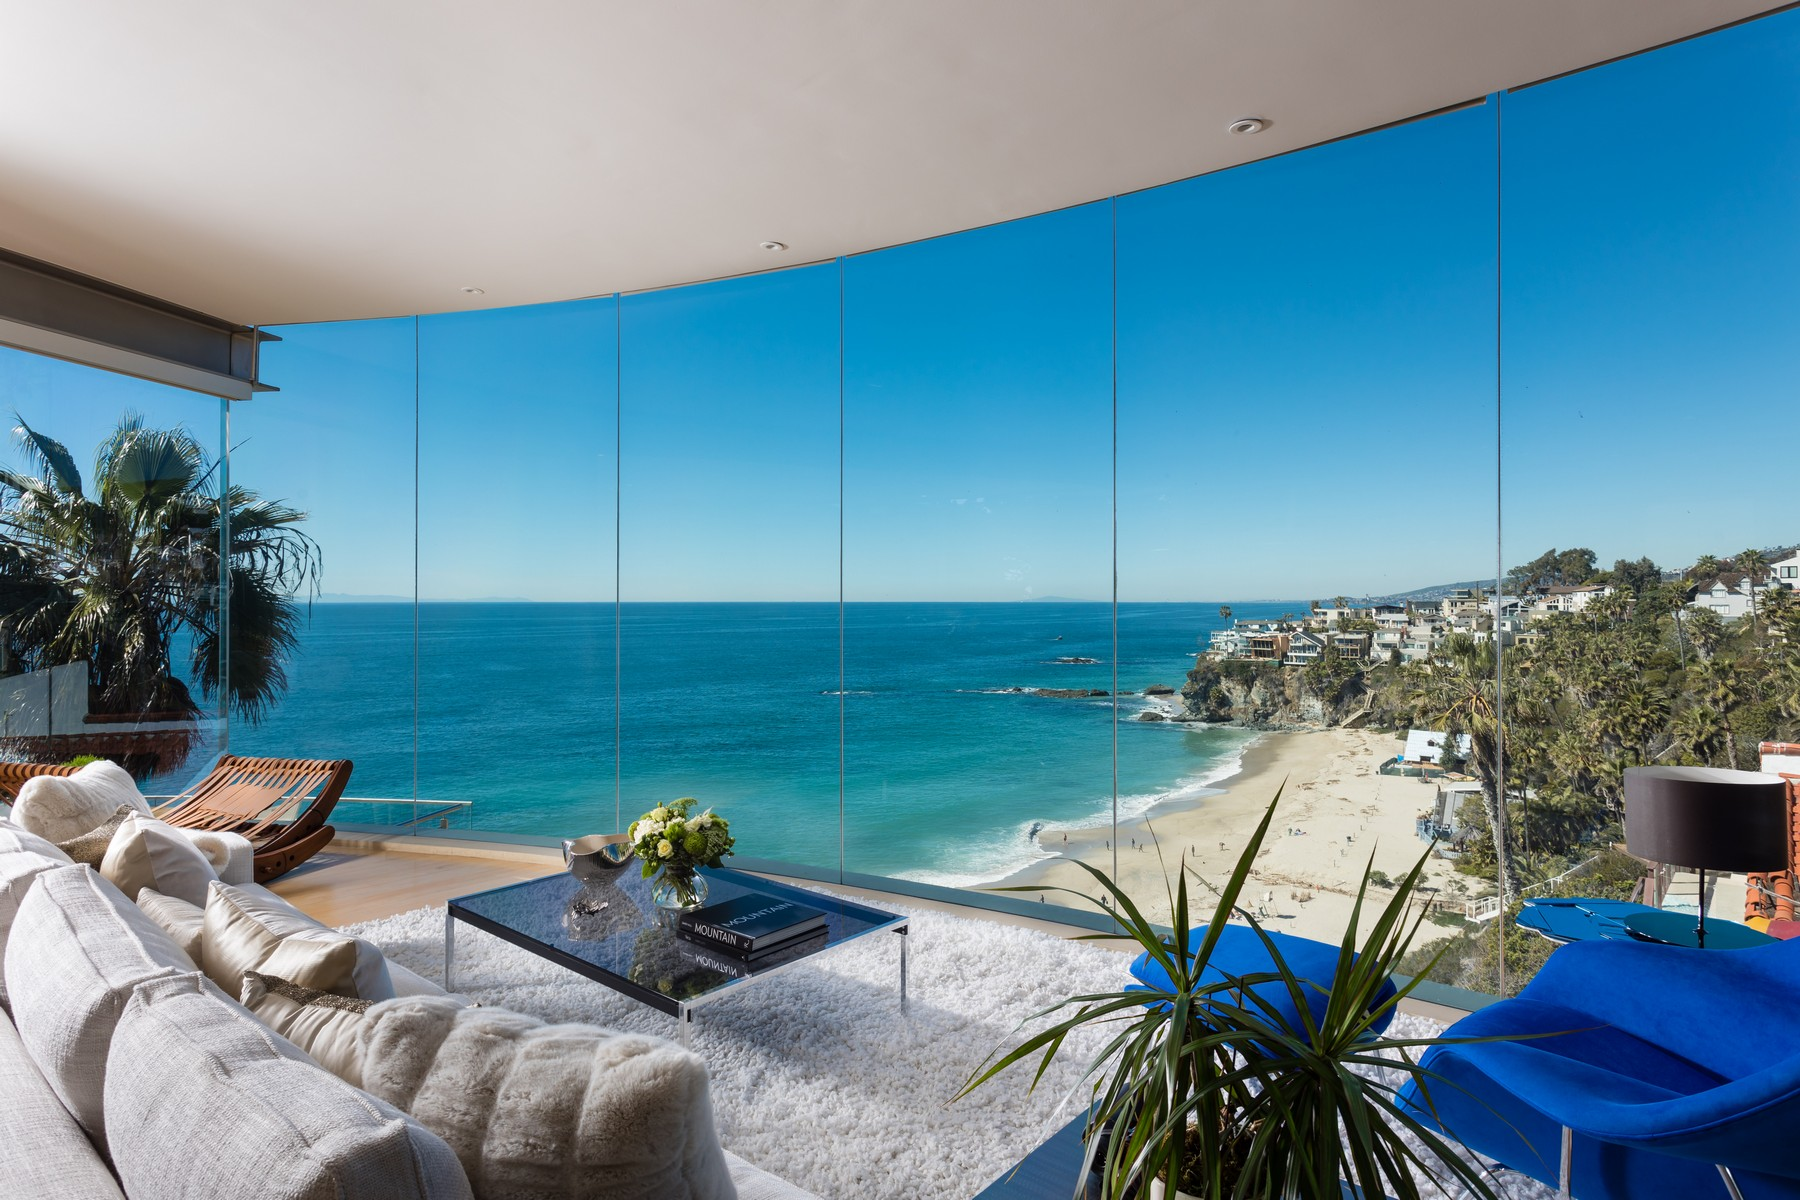 Single Family Homes for Sale at 32013 Point Place Laguna Beach, California 92651 United States